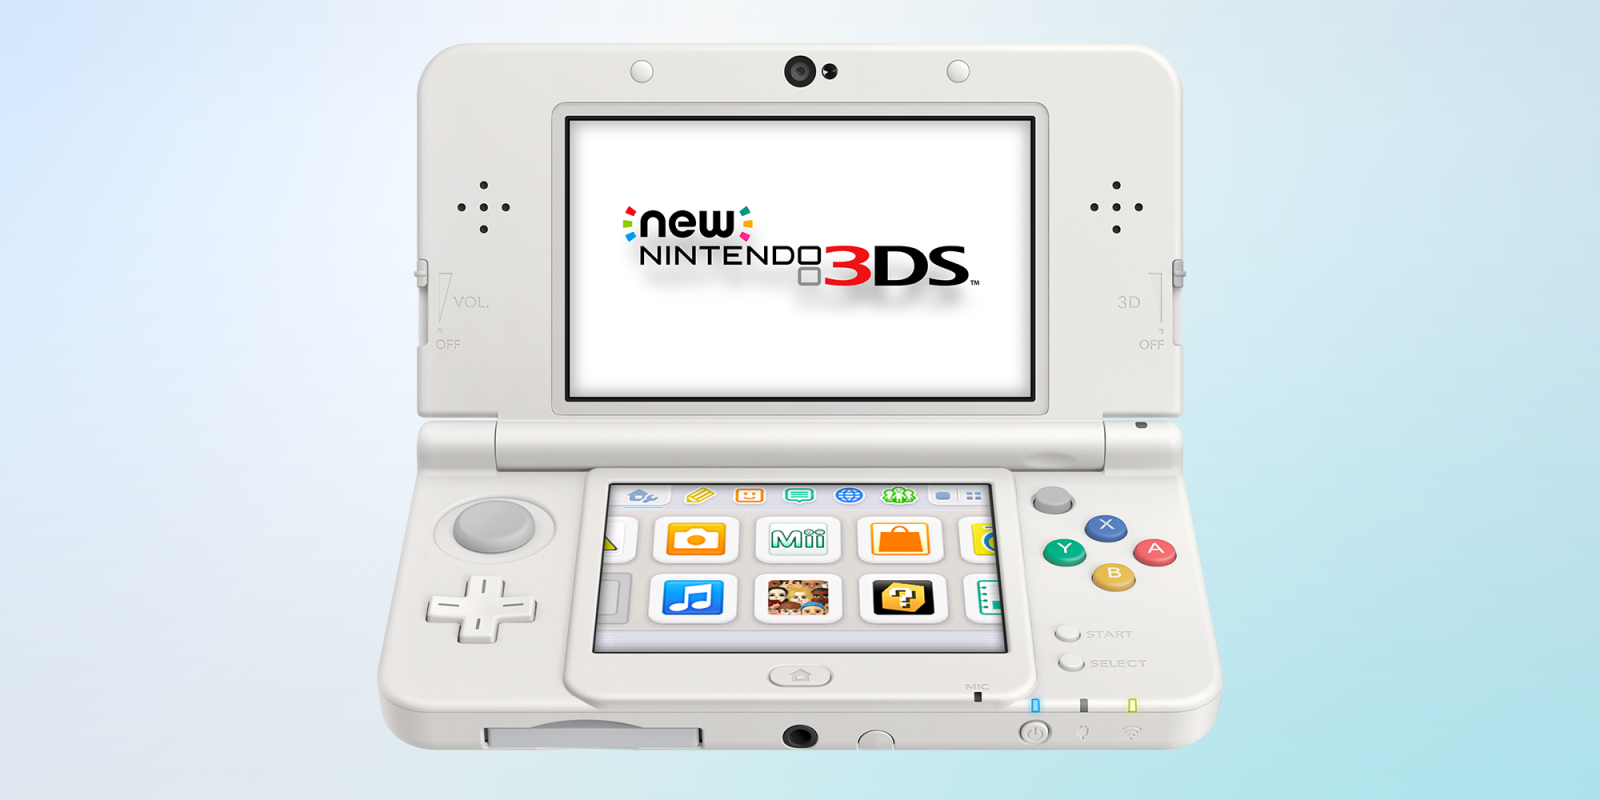 H2x1_3DS_SystemLandingPage_New3DS_v02.png